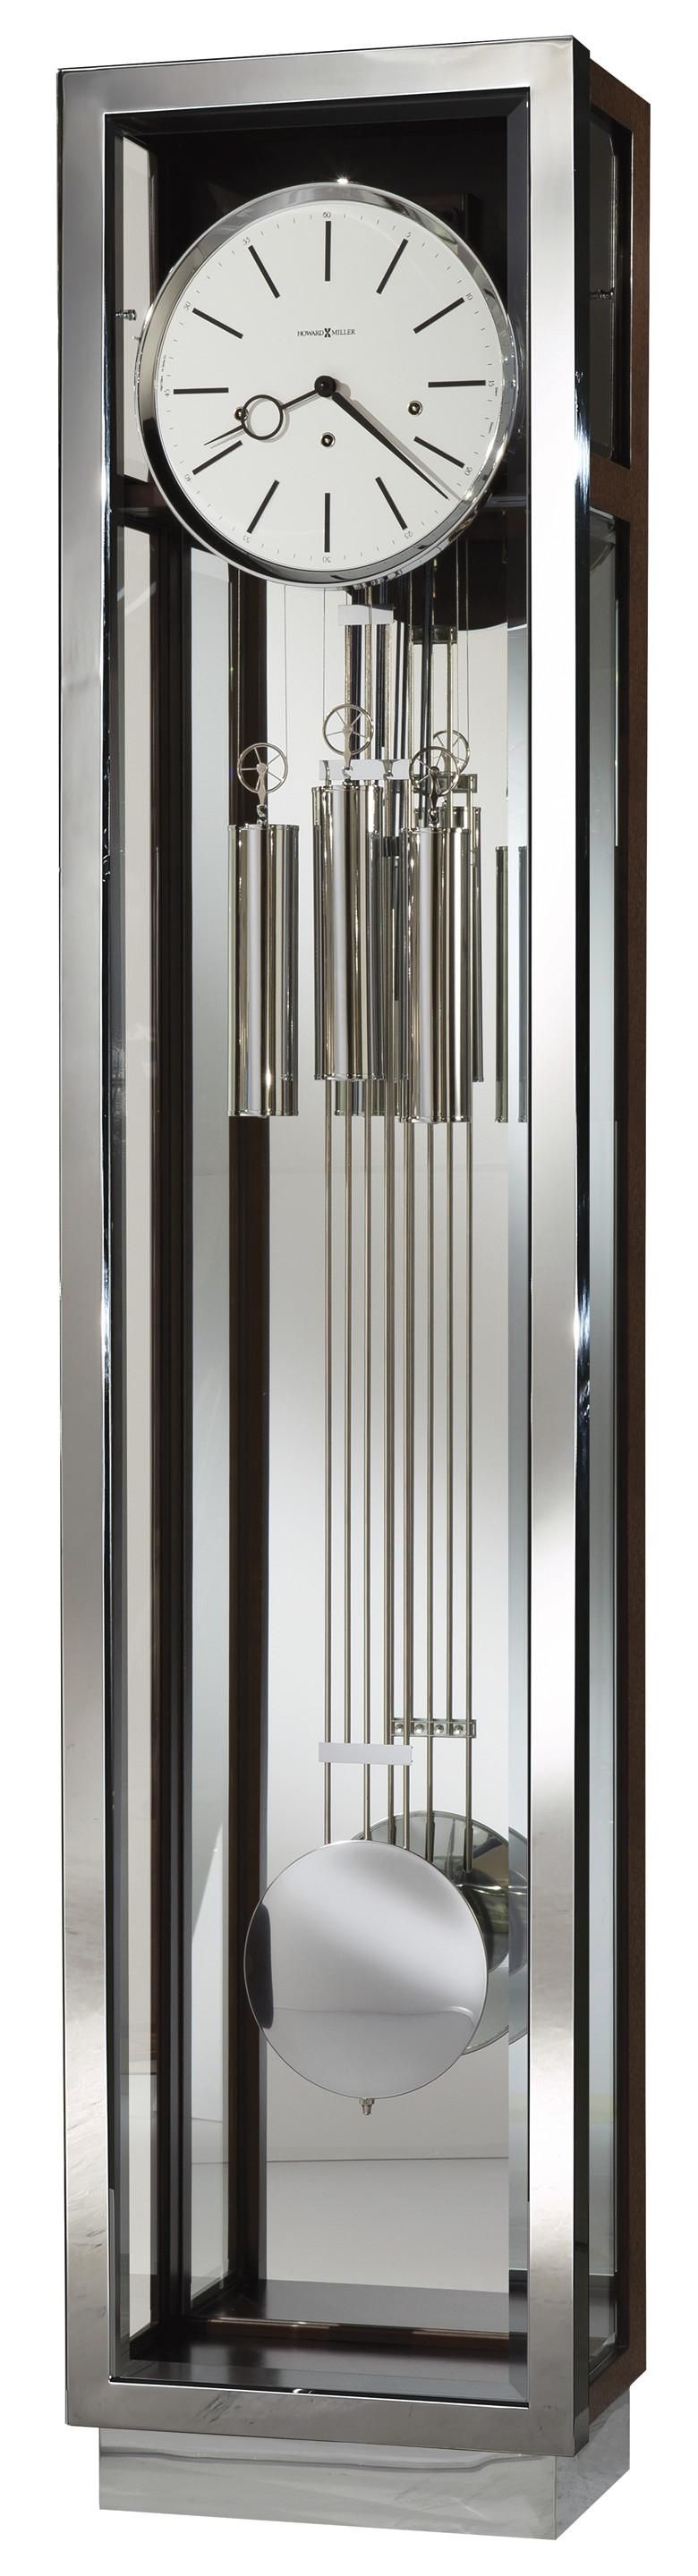 Howard Miller Clocks Modern Grandfather Clock With Chrome Finished Accents At Sheely S Furniture Liance